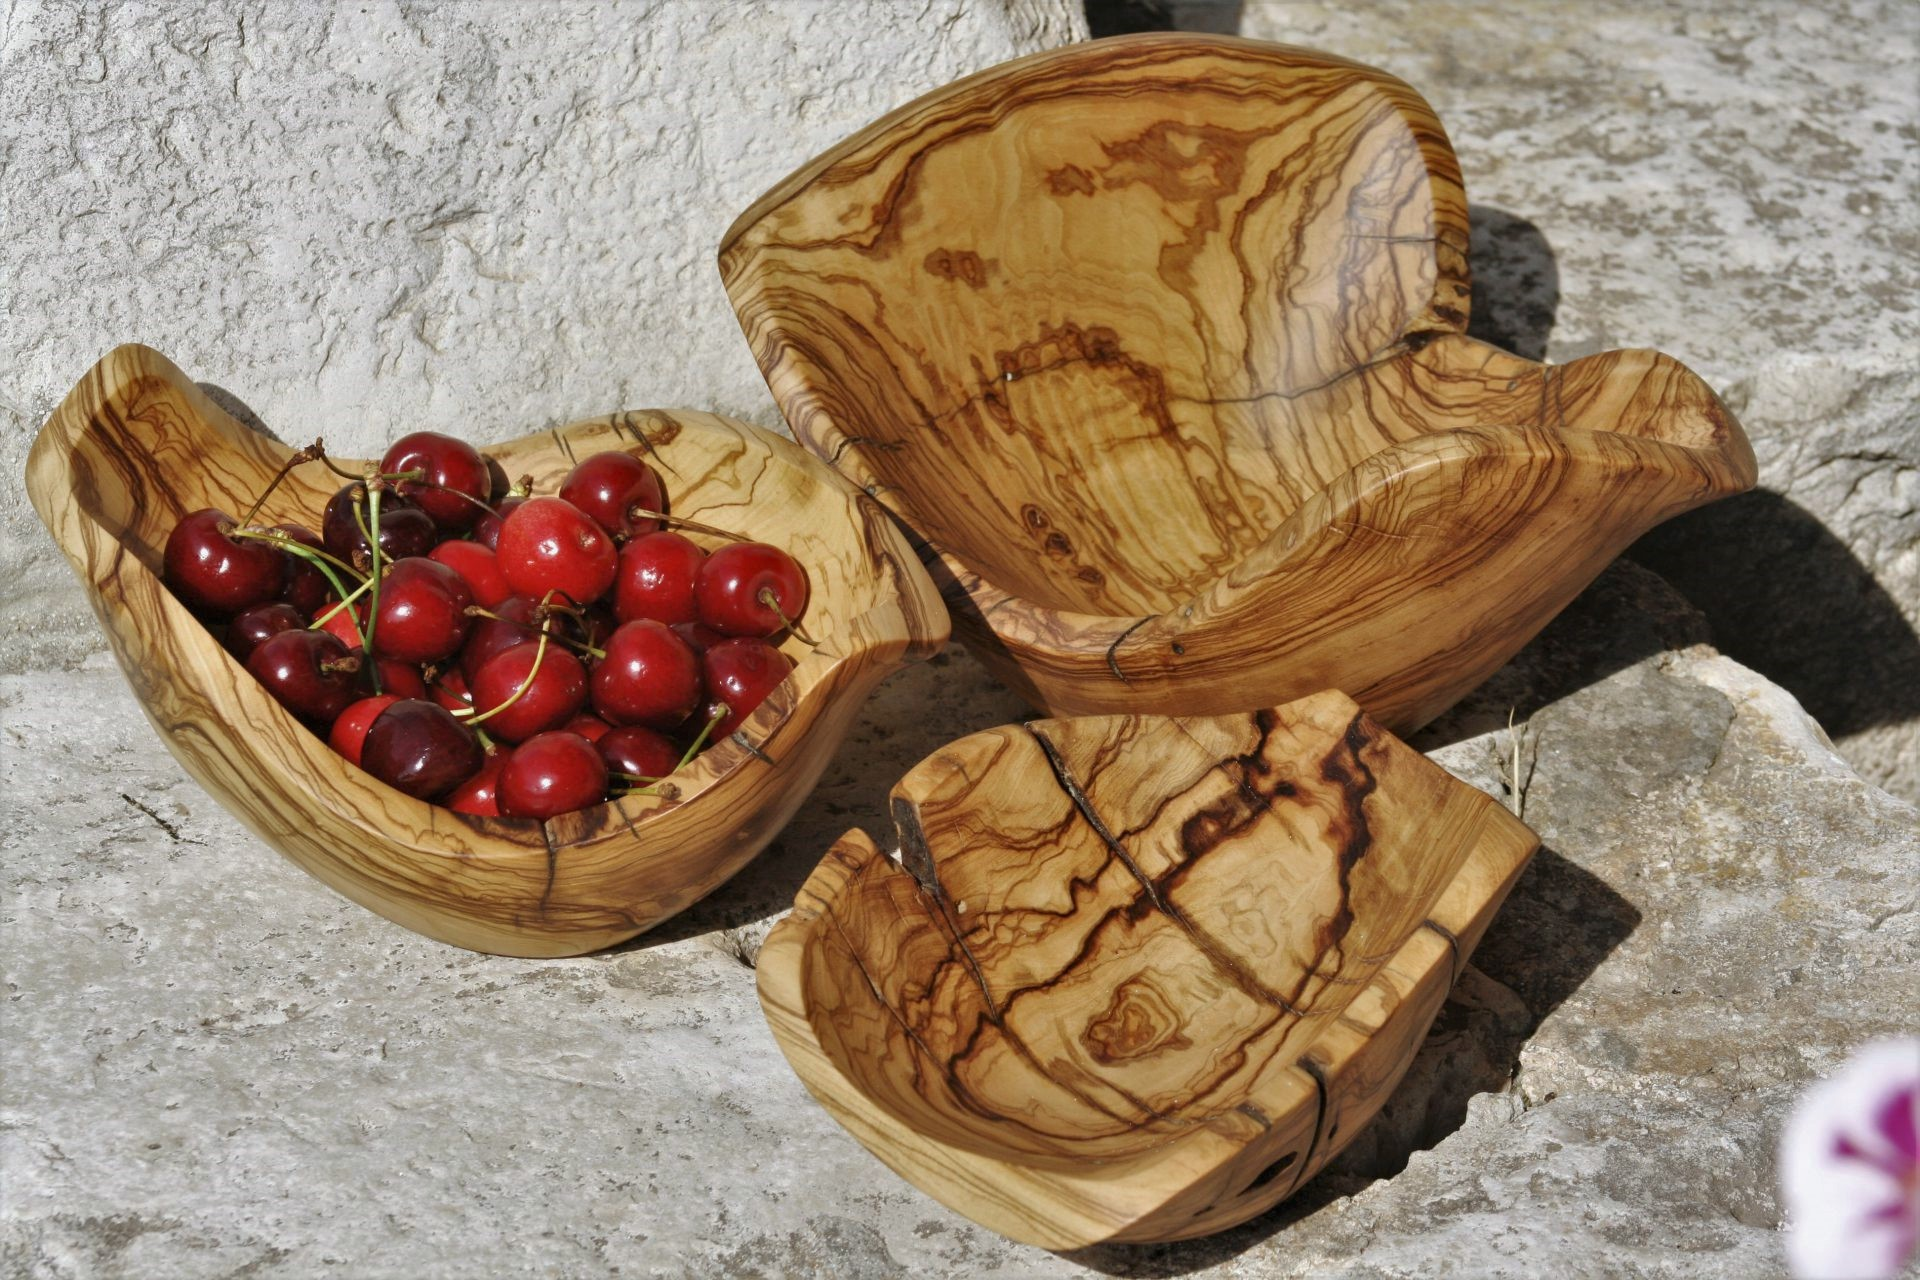 olive wood handmade unique various bowls